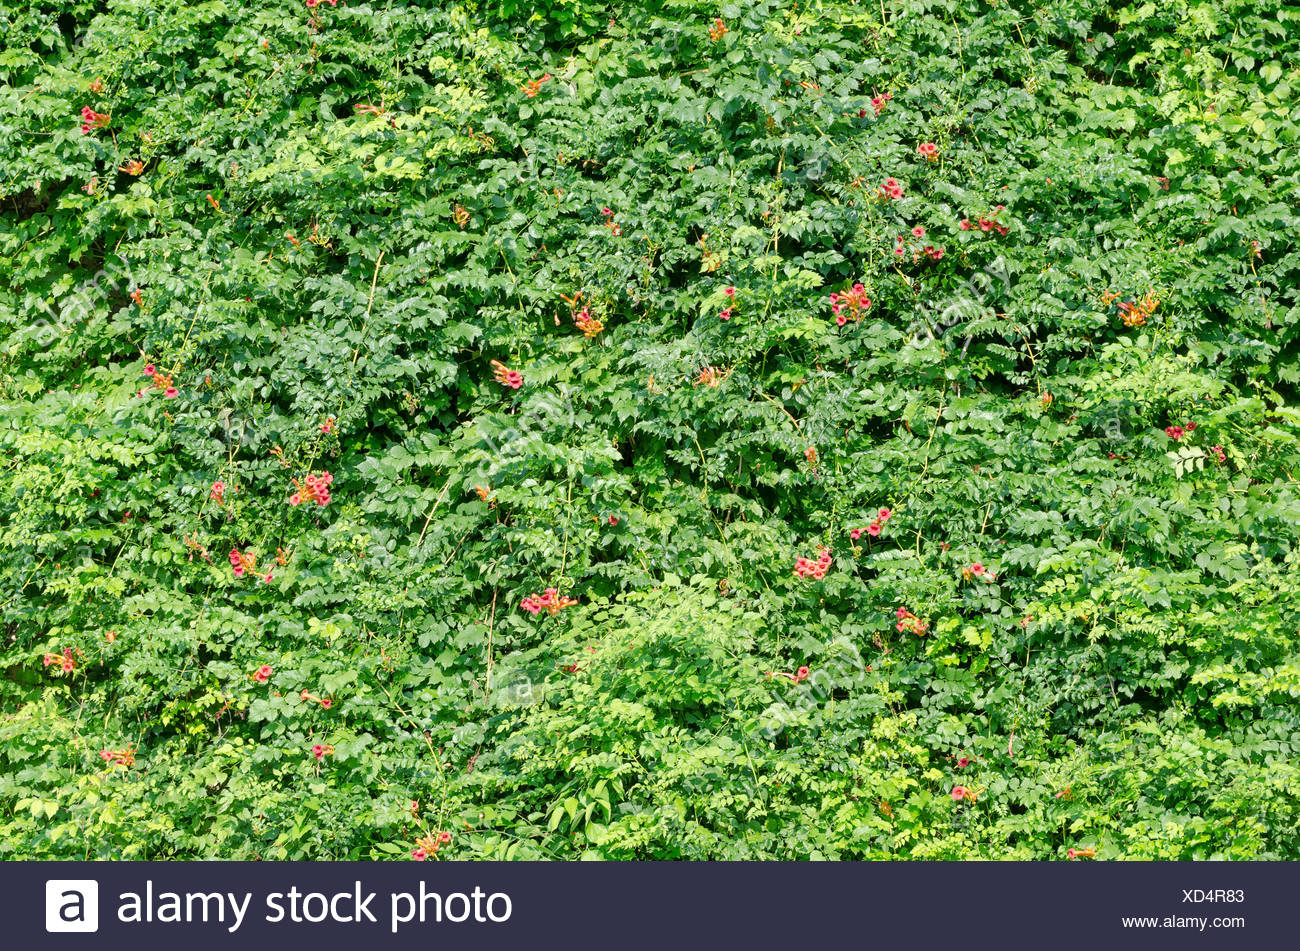 Fence Pattern Stockfotos & Fence Pattern Bilder - Seite 17 - Alamy